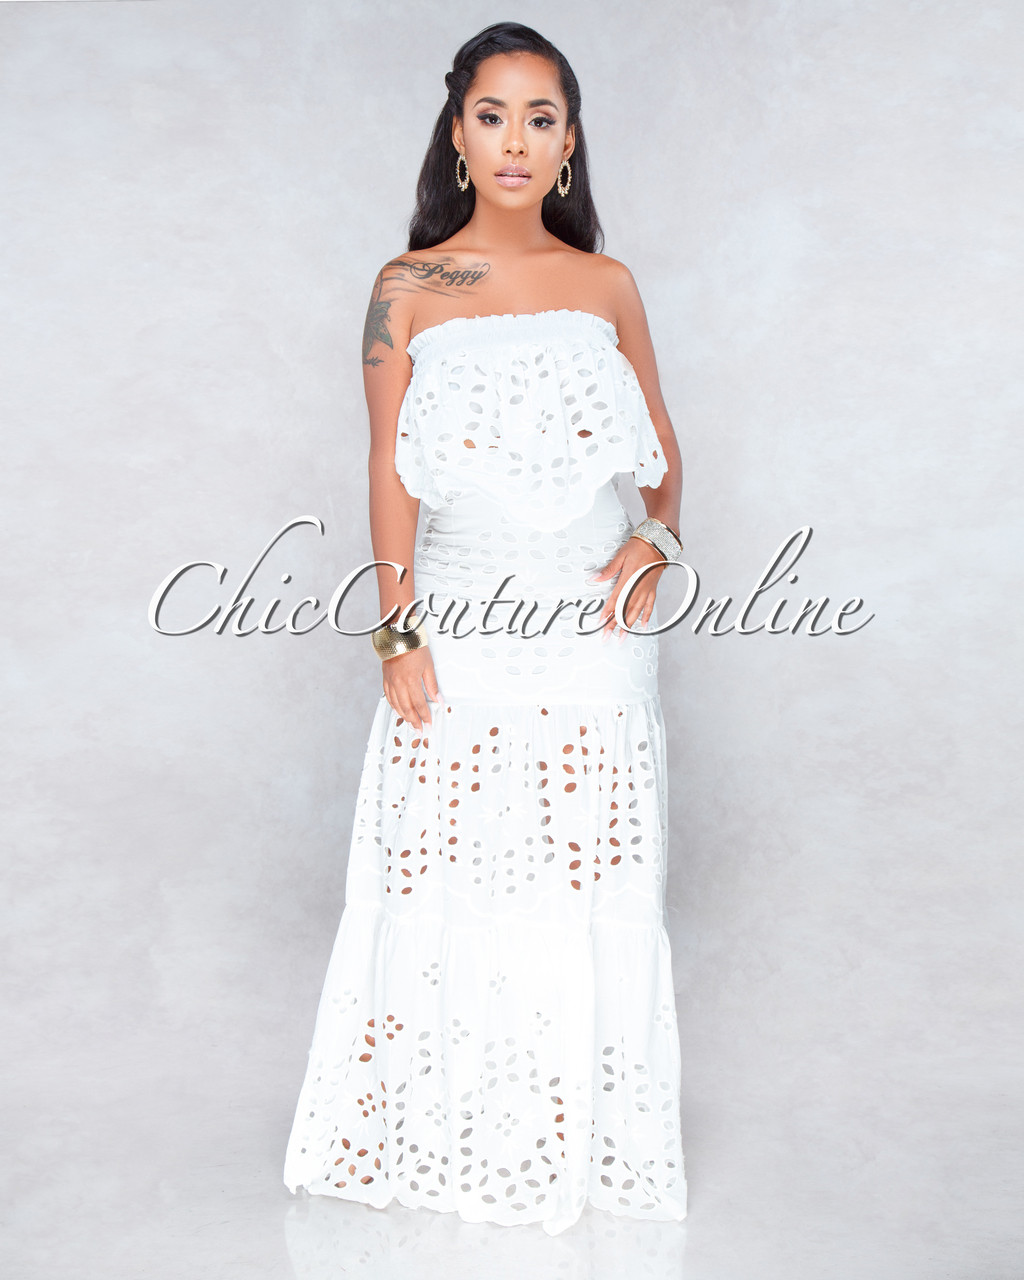 6202063d8bcb Calvin Off-White Eyelet Two Piece Maxi Skirt Set. Price: $130.00. or 4  interest-free installments of $32.50 by Afterpay ⓘ. Image 1